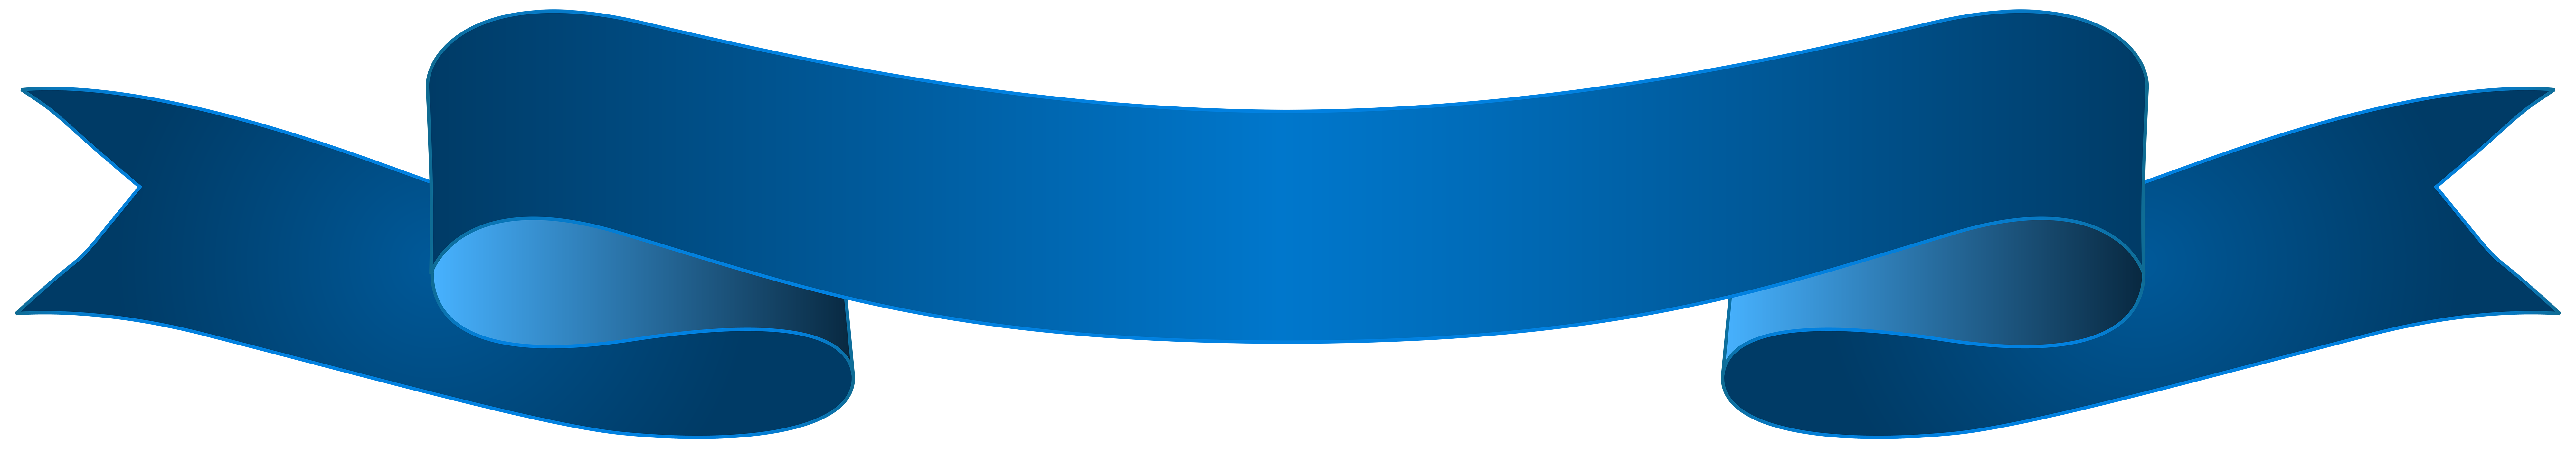 Banner blue. Clipart png free download